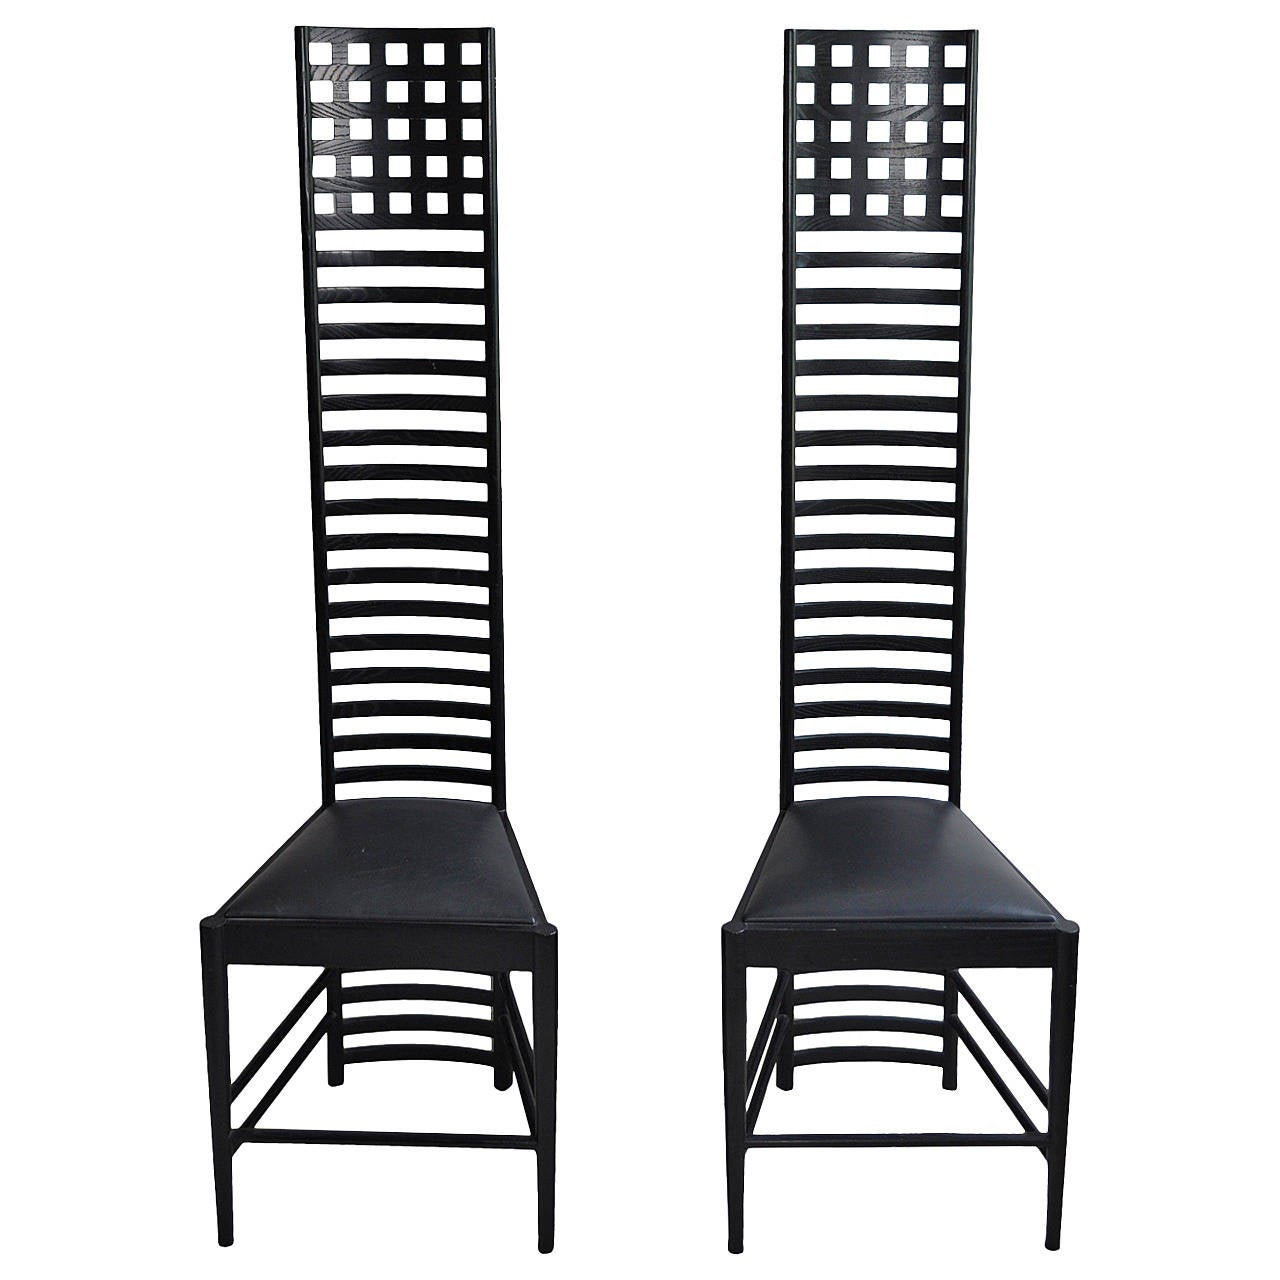 #53585E Art Nouveau Style High Back Wood Chairs Pair At 1stdibs with 1280x1280 px of Highly Rated High Back Wooden Bench 12801280 picture/photo @ avoidforclosure.info